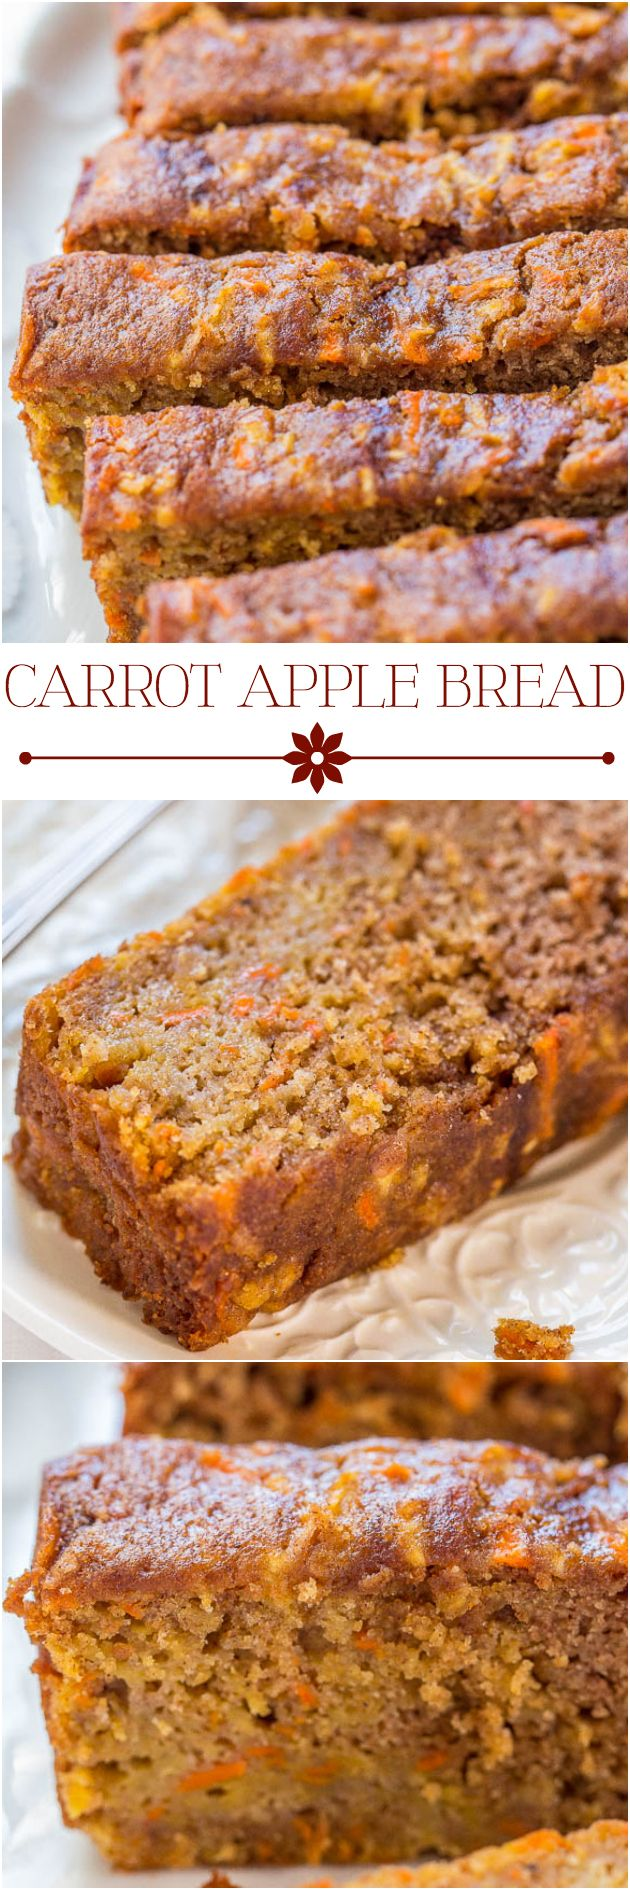 Carrot Apple Bread - Carrot cake with apples added and baked as a bread so it's healthier! Super moist, packed with flavor, fast and easy!! Perfect for #MothersDay and #Brunch !